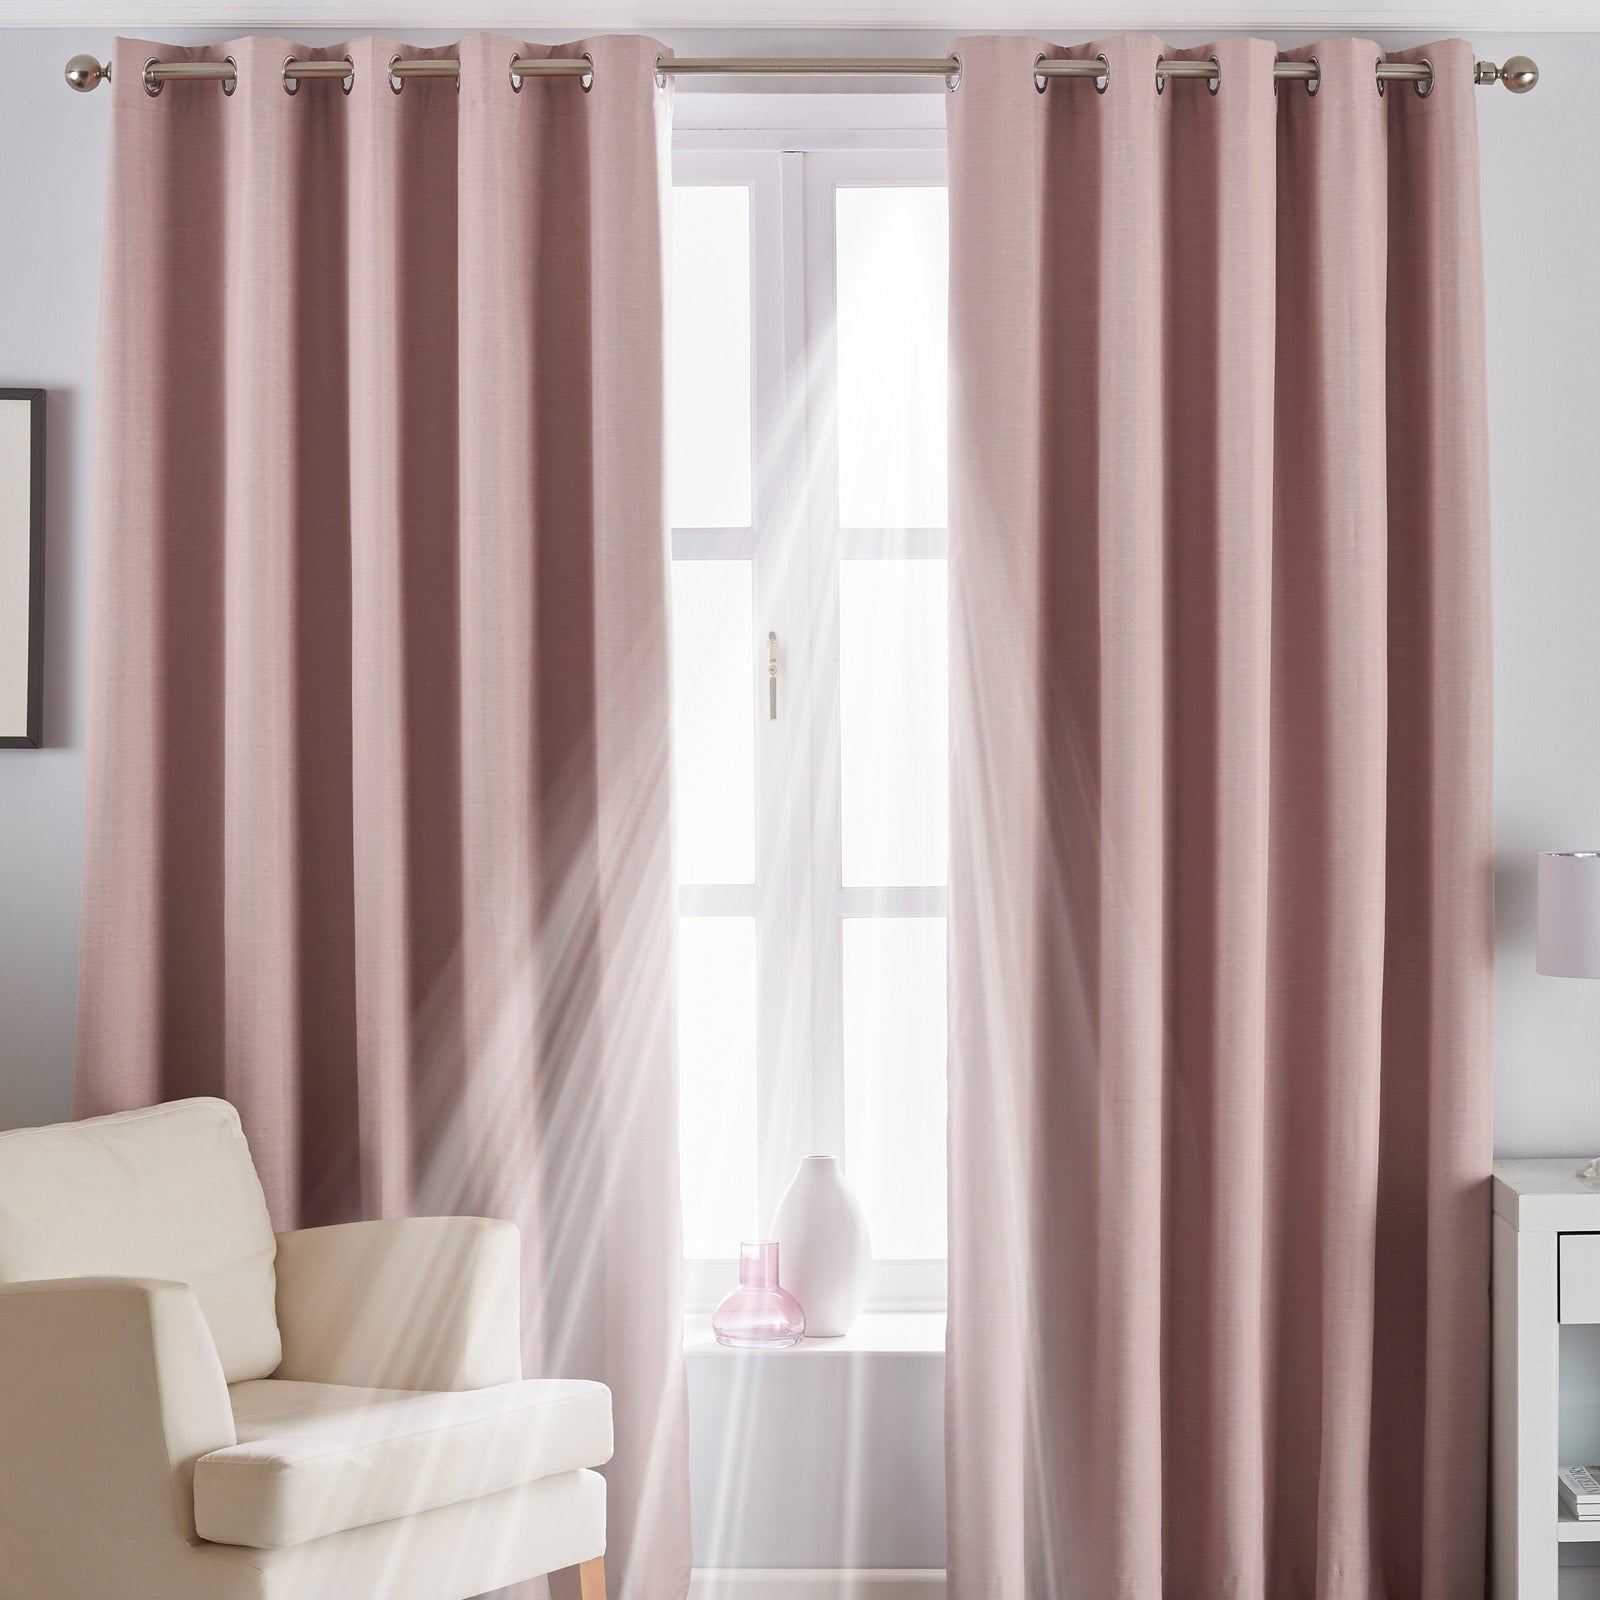 Twilight Thermal Blackout Eyelet Curtains Blush Pink - 46'' x 54'' - Ideal Textiles